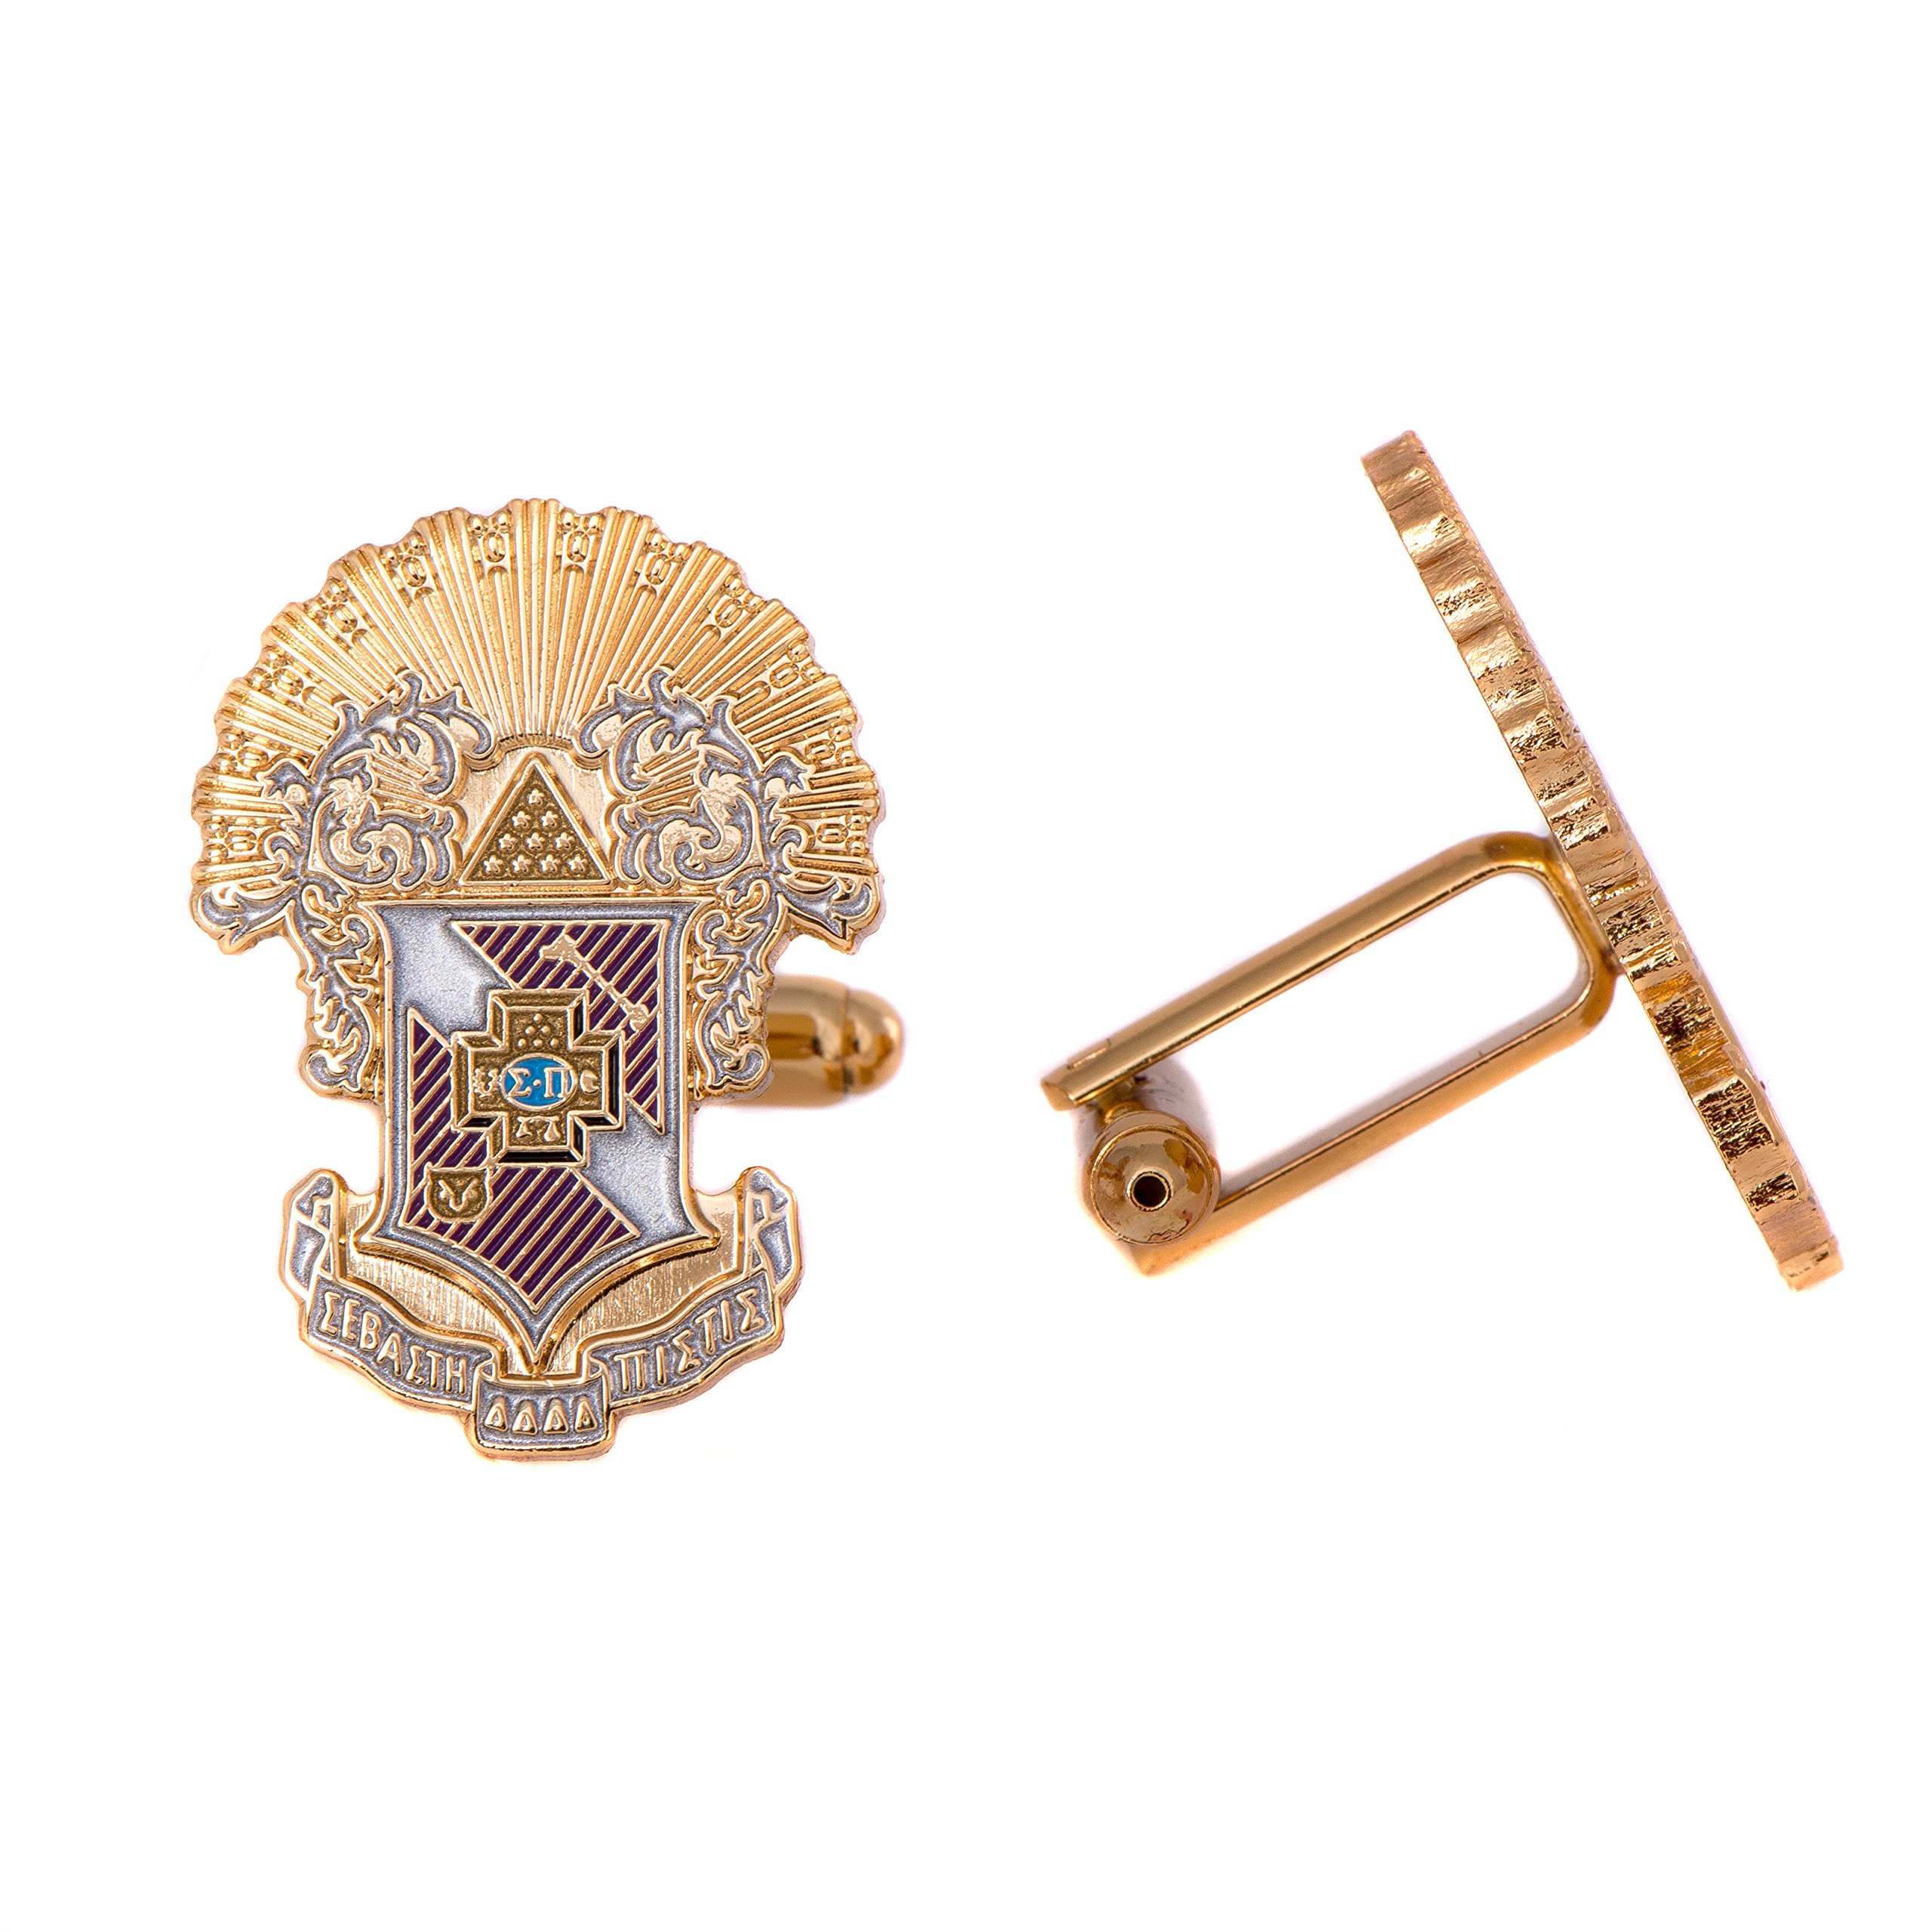 Desert Cactus Sigma Pi Fraternity Crest Cufflinks Greek Formal Wear Blazer Jacket